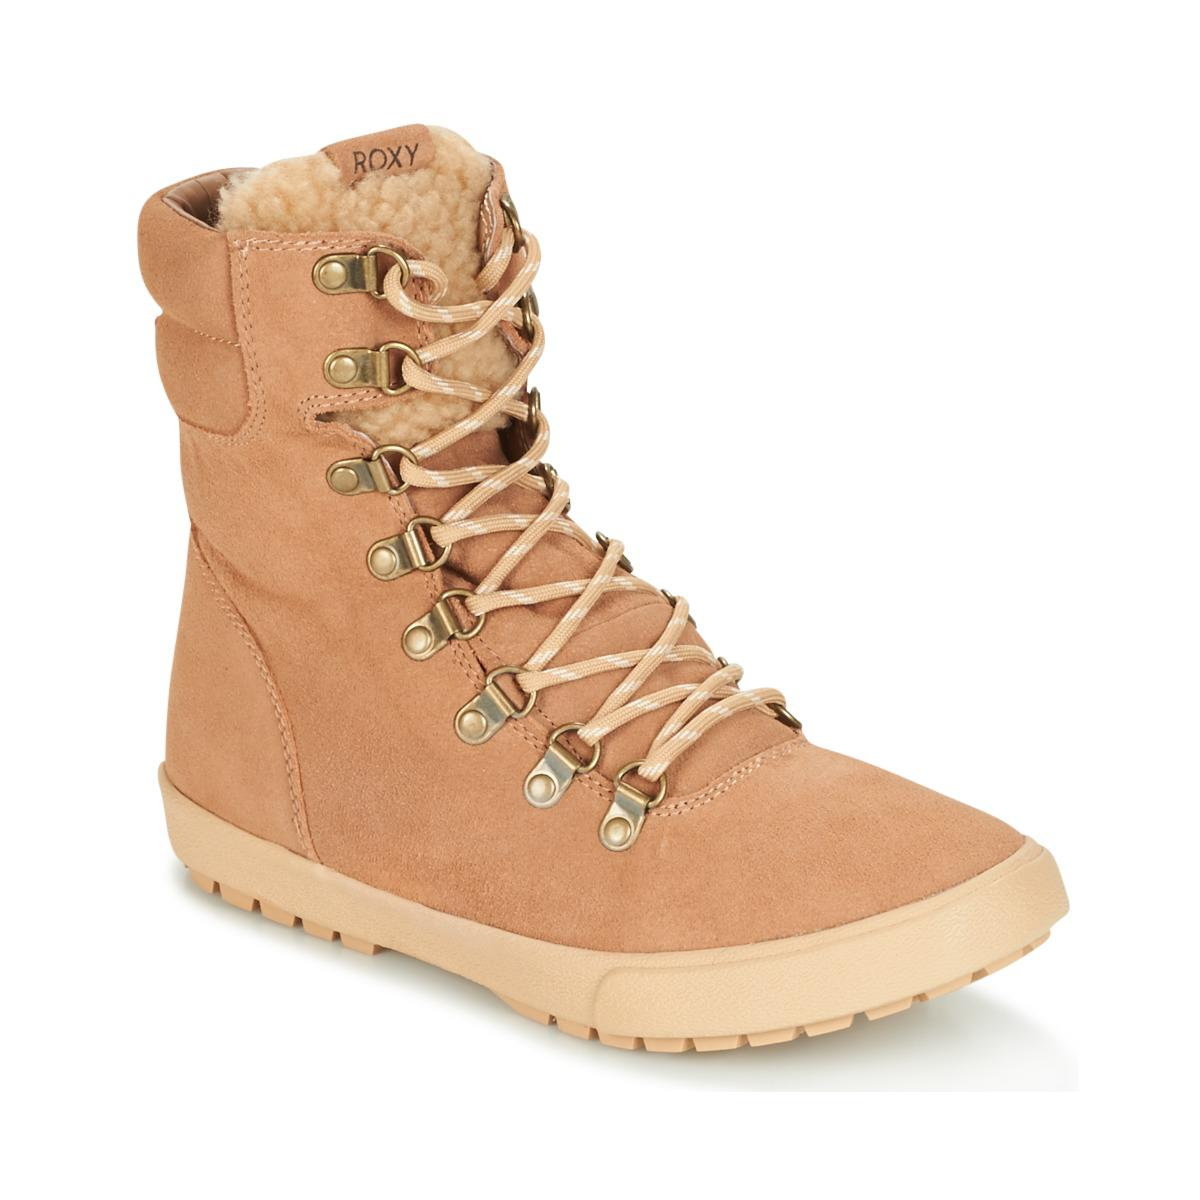 1a408ea9307480 Roxy Anderson J Boot Rus Women's Mid Boots In Beige in Natural - Lyst